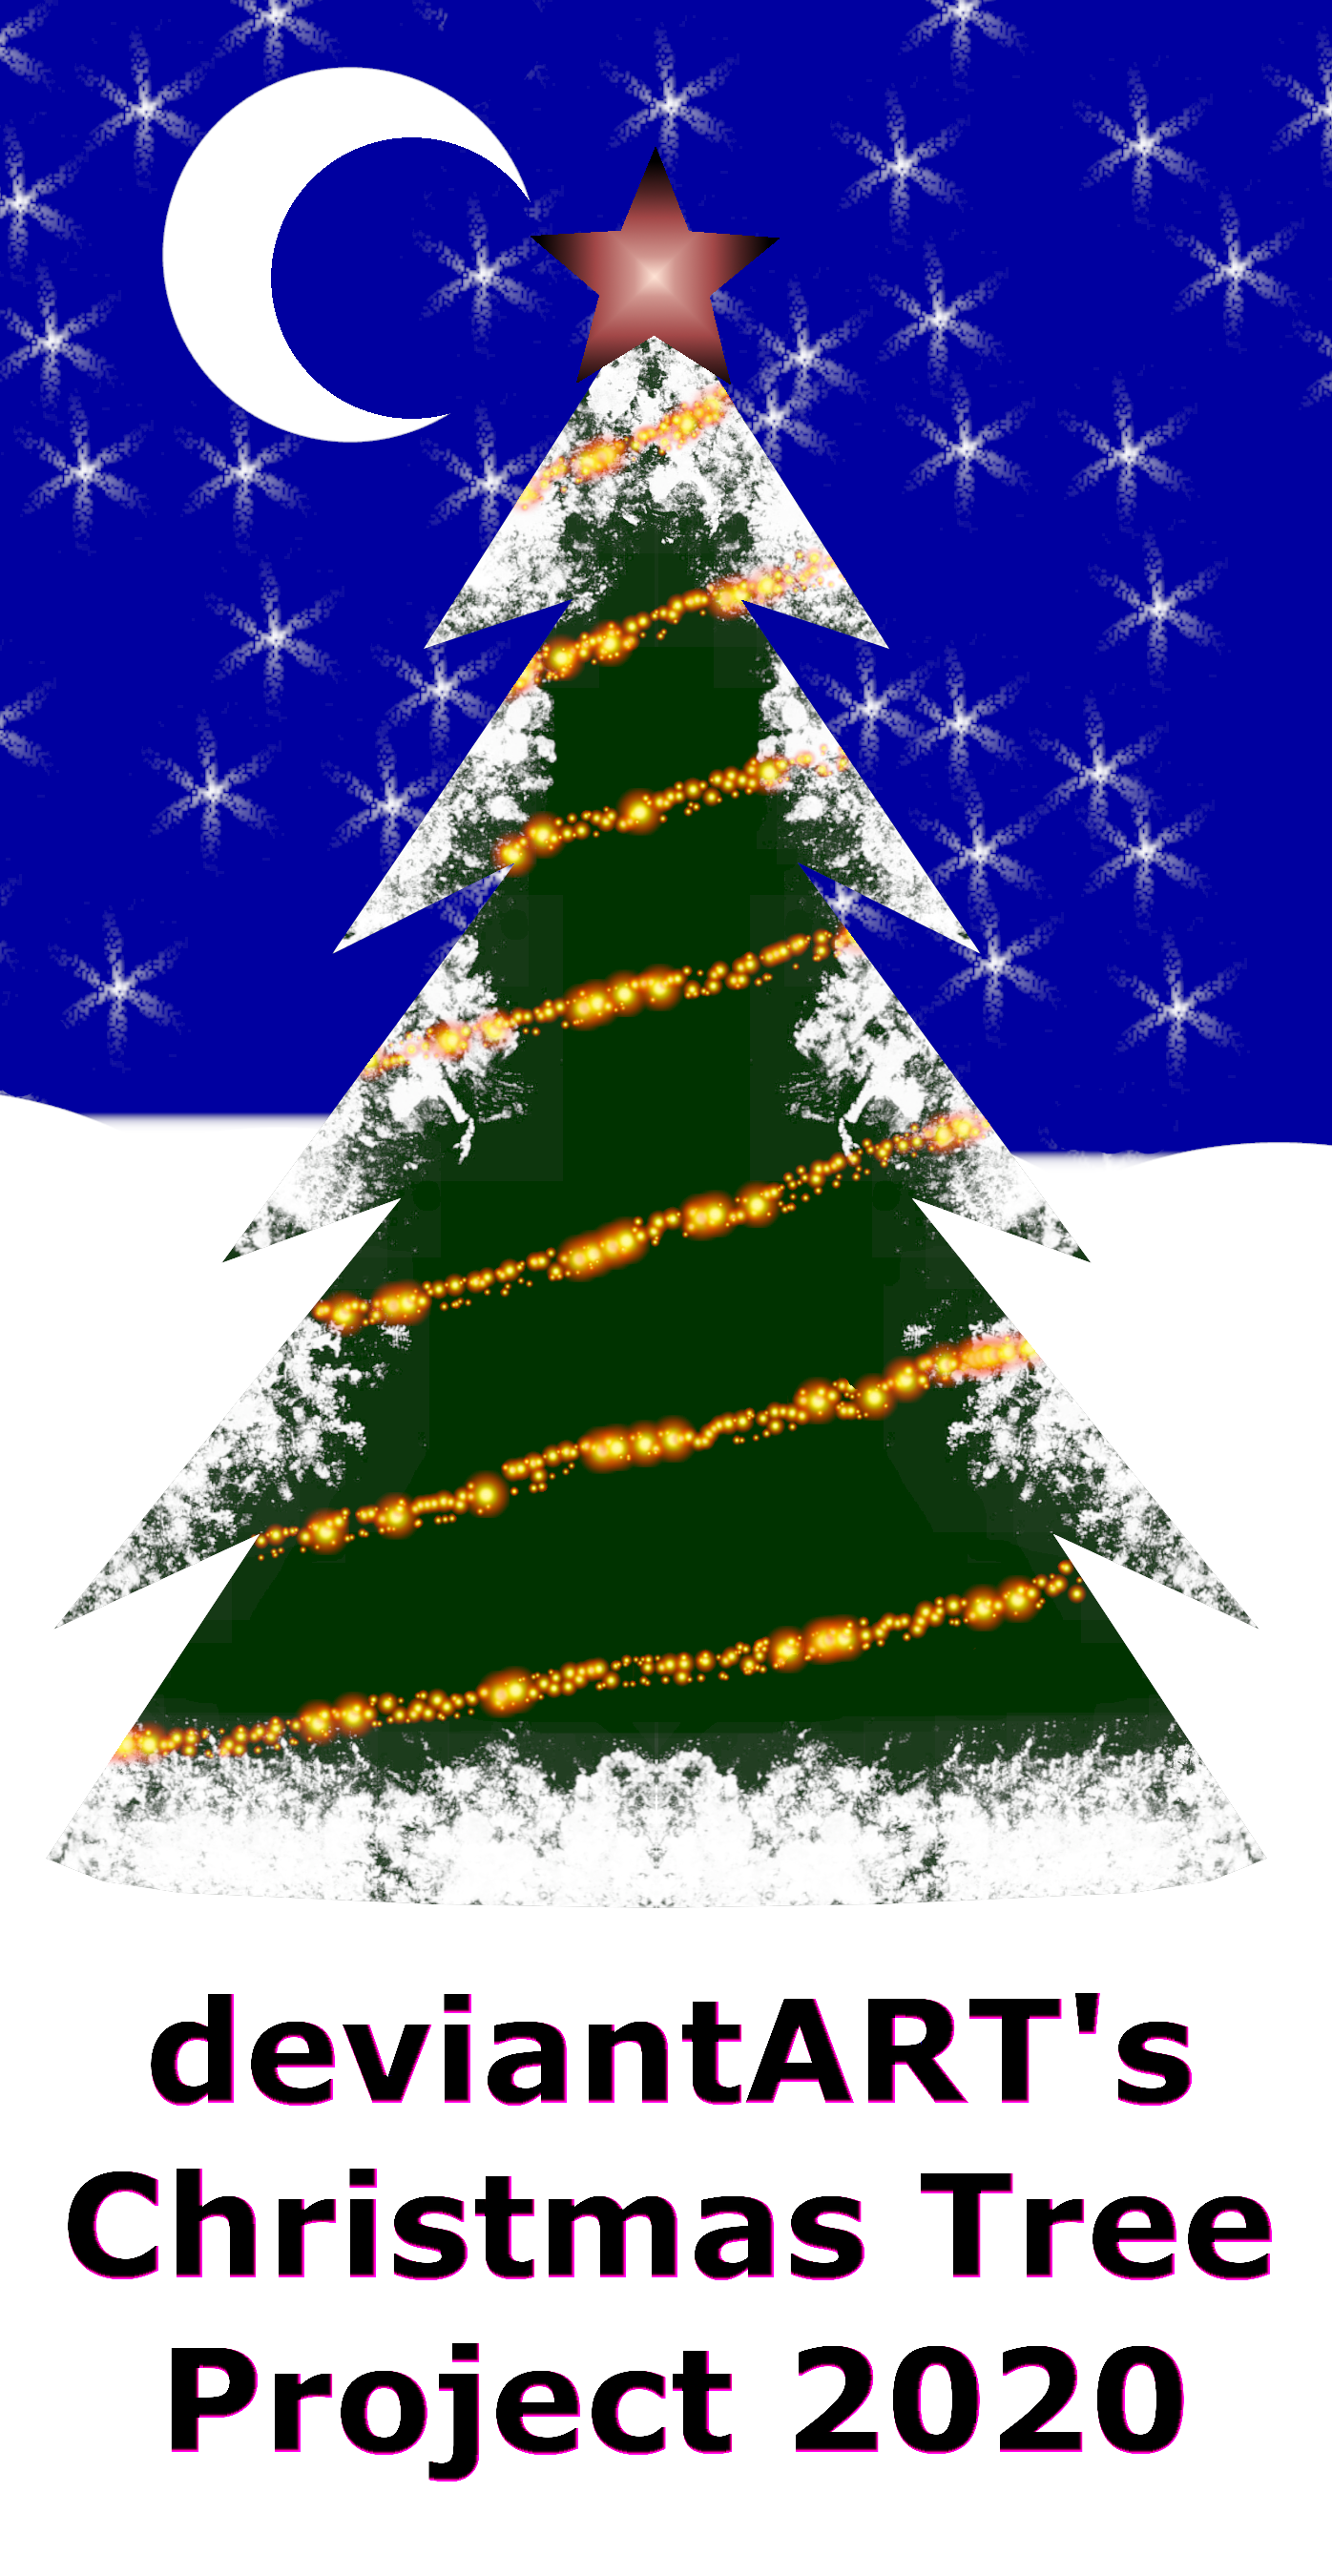 Christmas Tree Project 2020 deviantART's Official Christmas Tree Project 2020 by MelMuff on